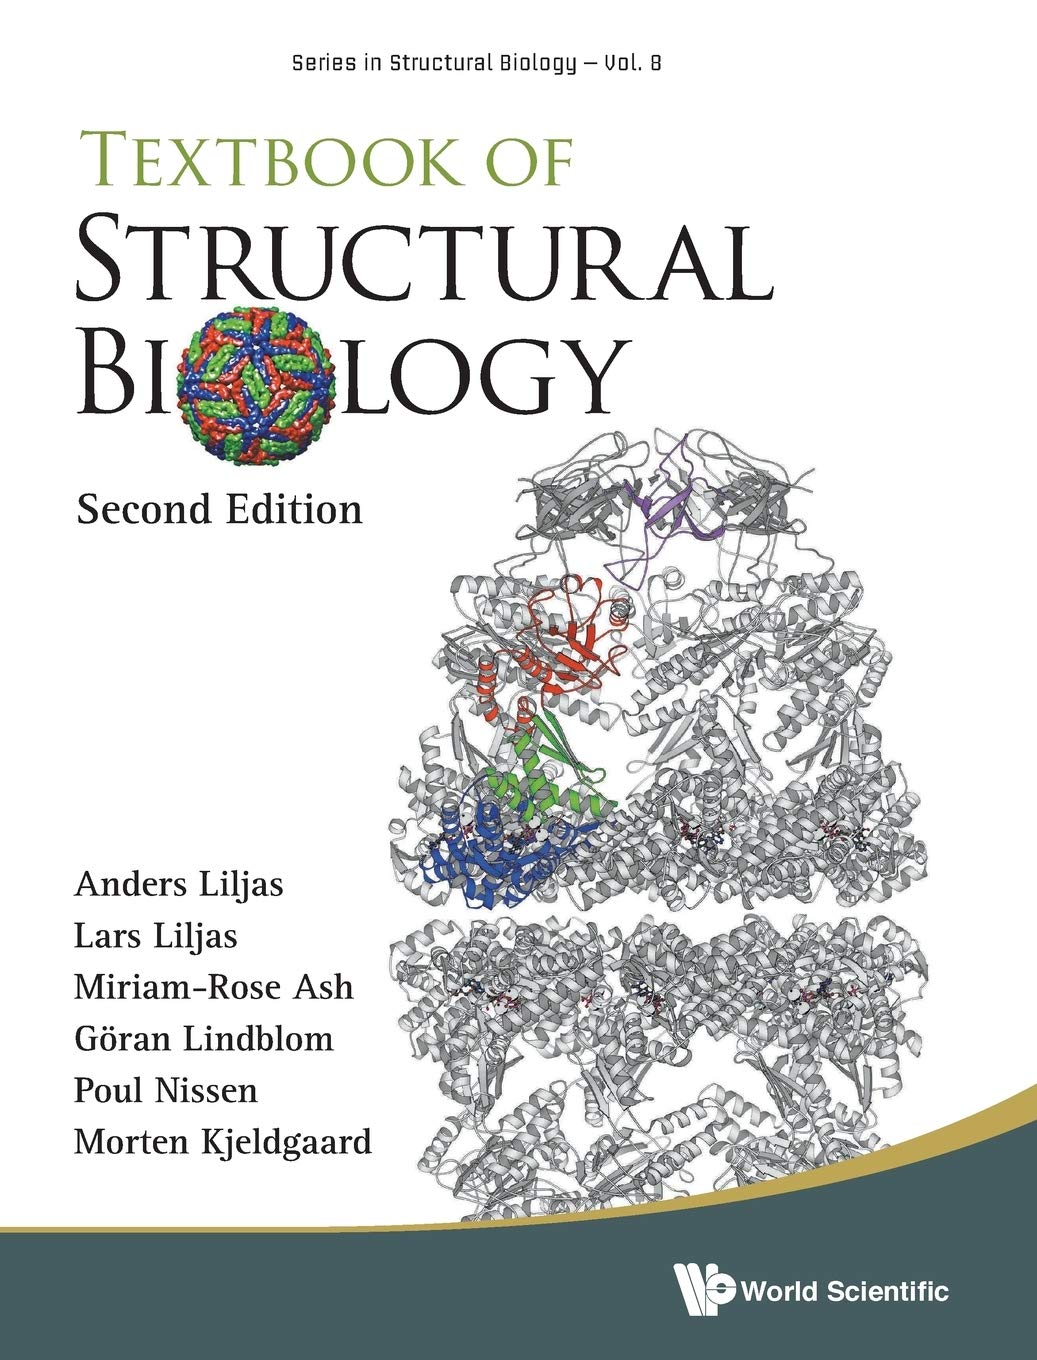 Textbook of Structural Biology: Second Edition: 8 Series in ...